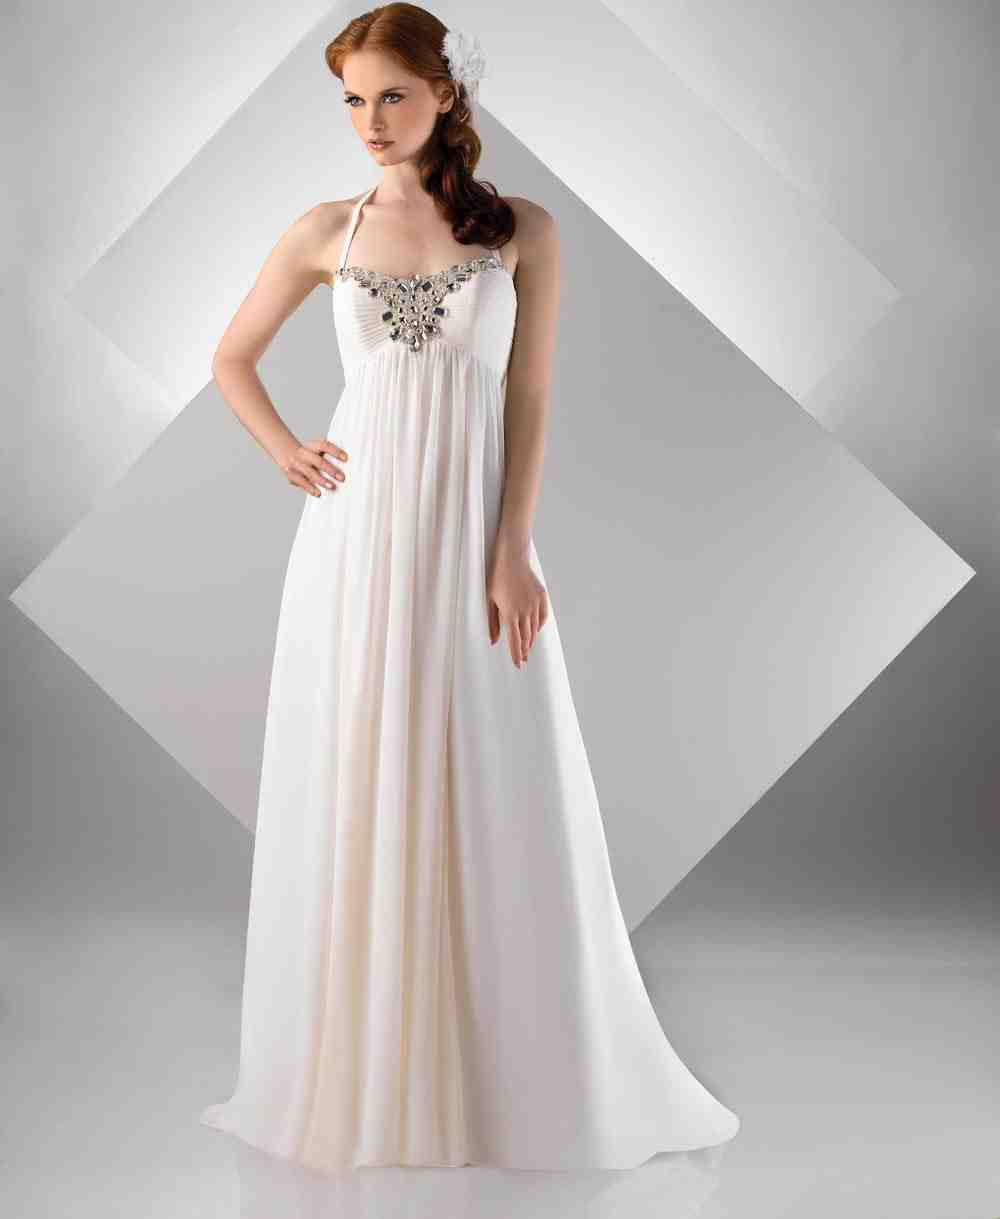 Simple maternity wedding dresses wedding and bridal for Maternity dress for a wedding